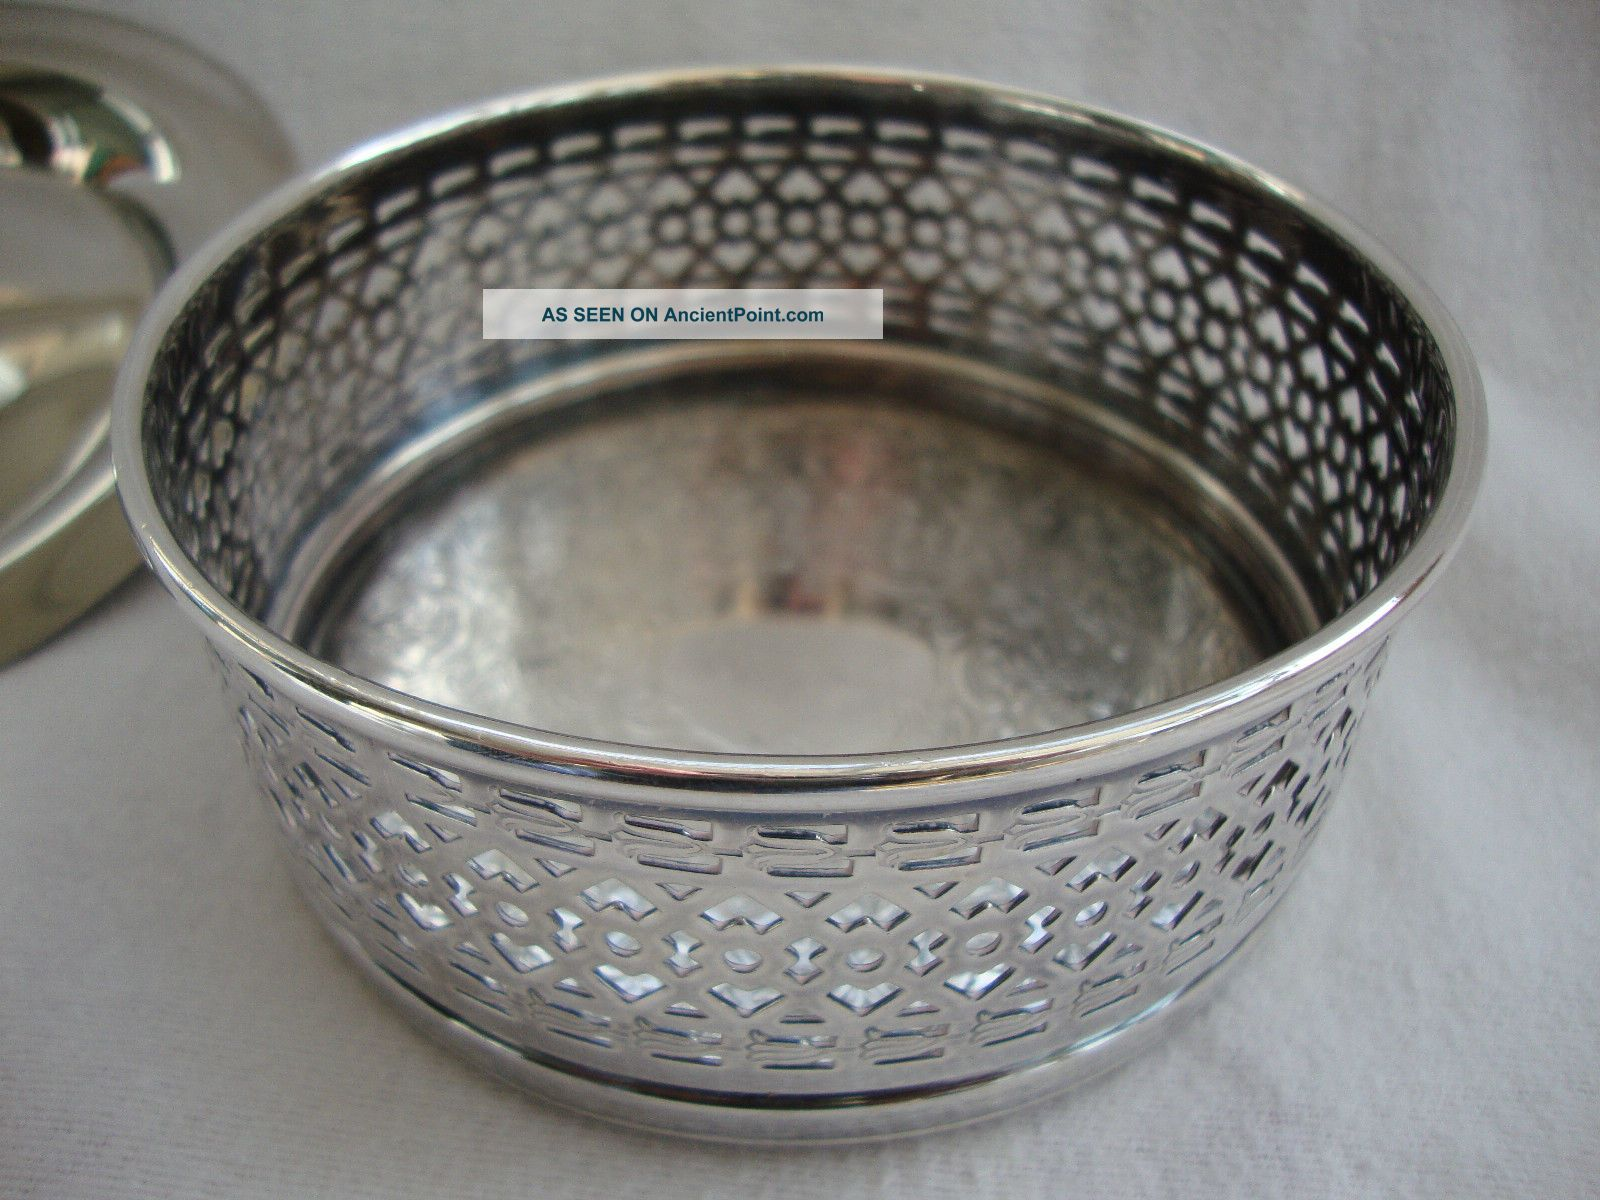 A Strachan Silver Plated Table Wine Bottle Coaster & M&r Silver Plate Nut Dish Dishes & Coasters photo